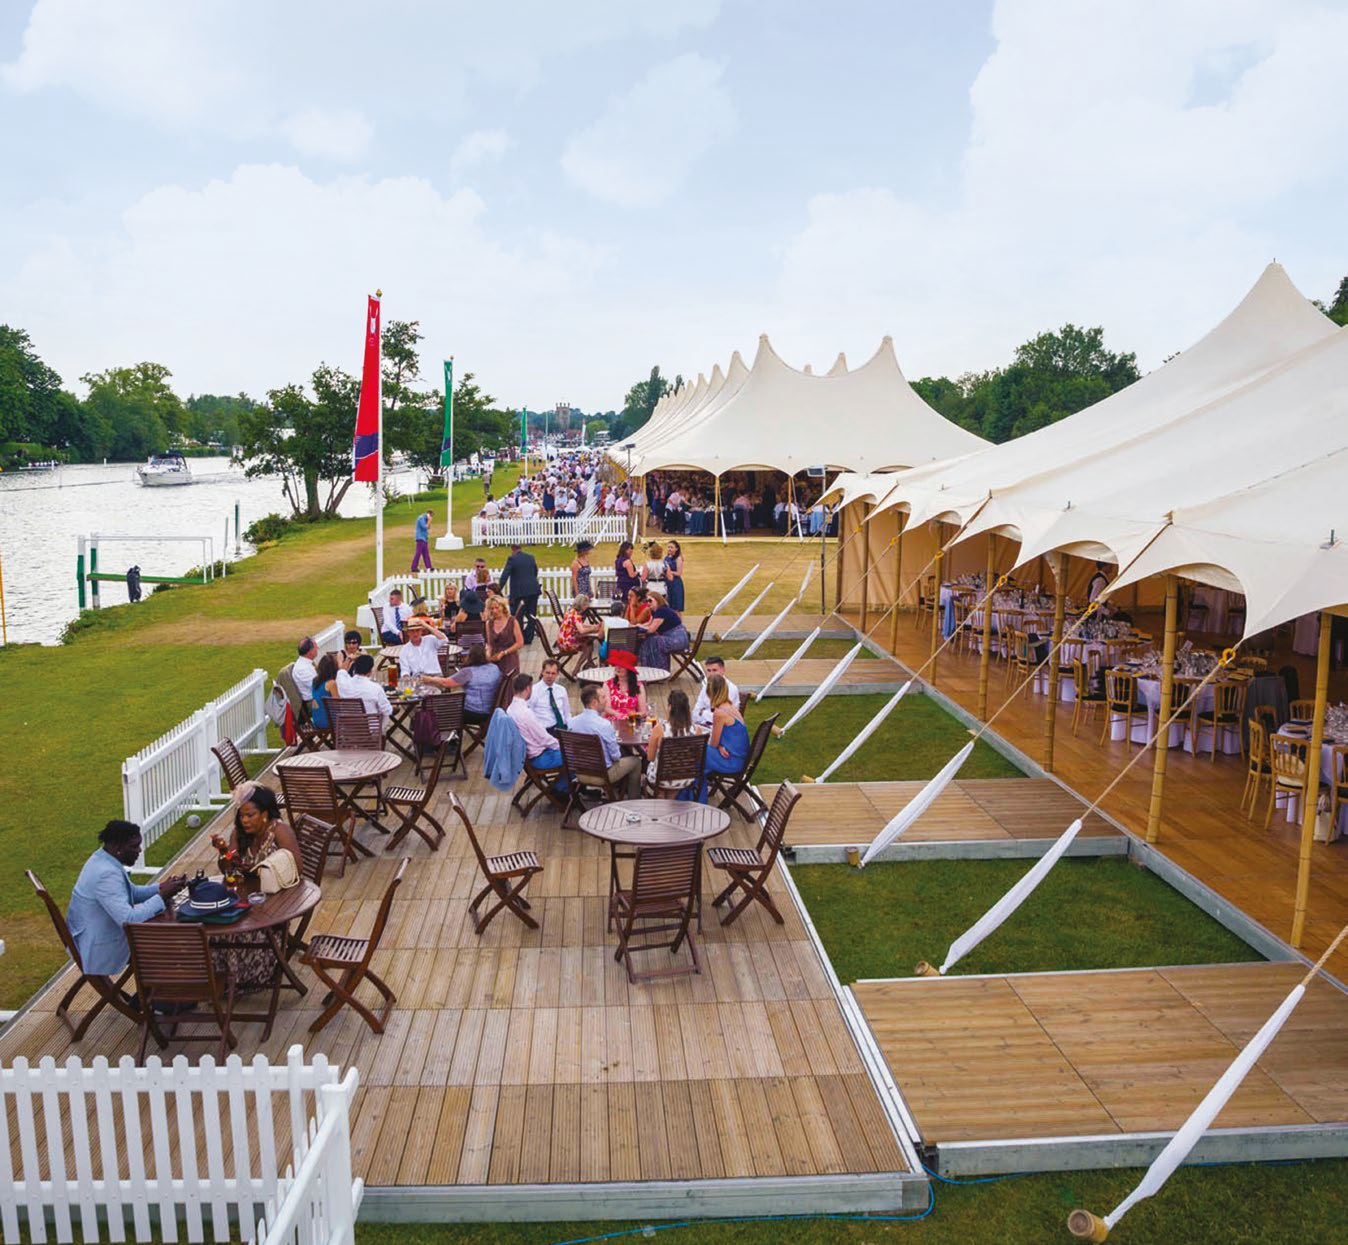 Fawley Club House for 100 or More Guests - Henley on Thames, OxfordshireWednesday 1 to Sunday 5 July 2020Price on Application